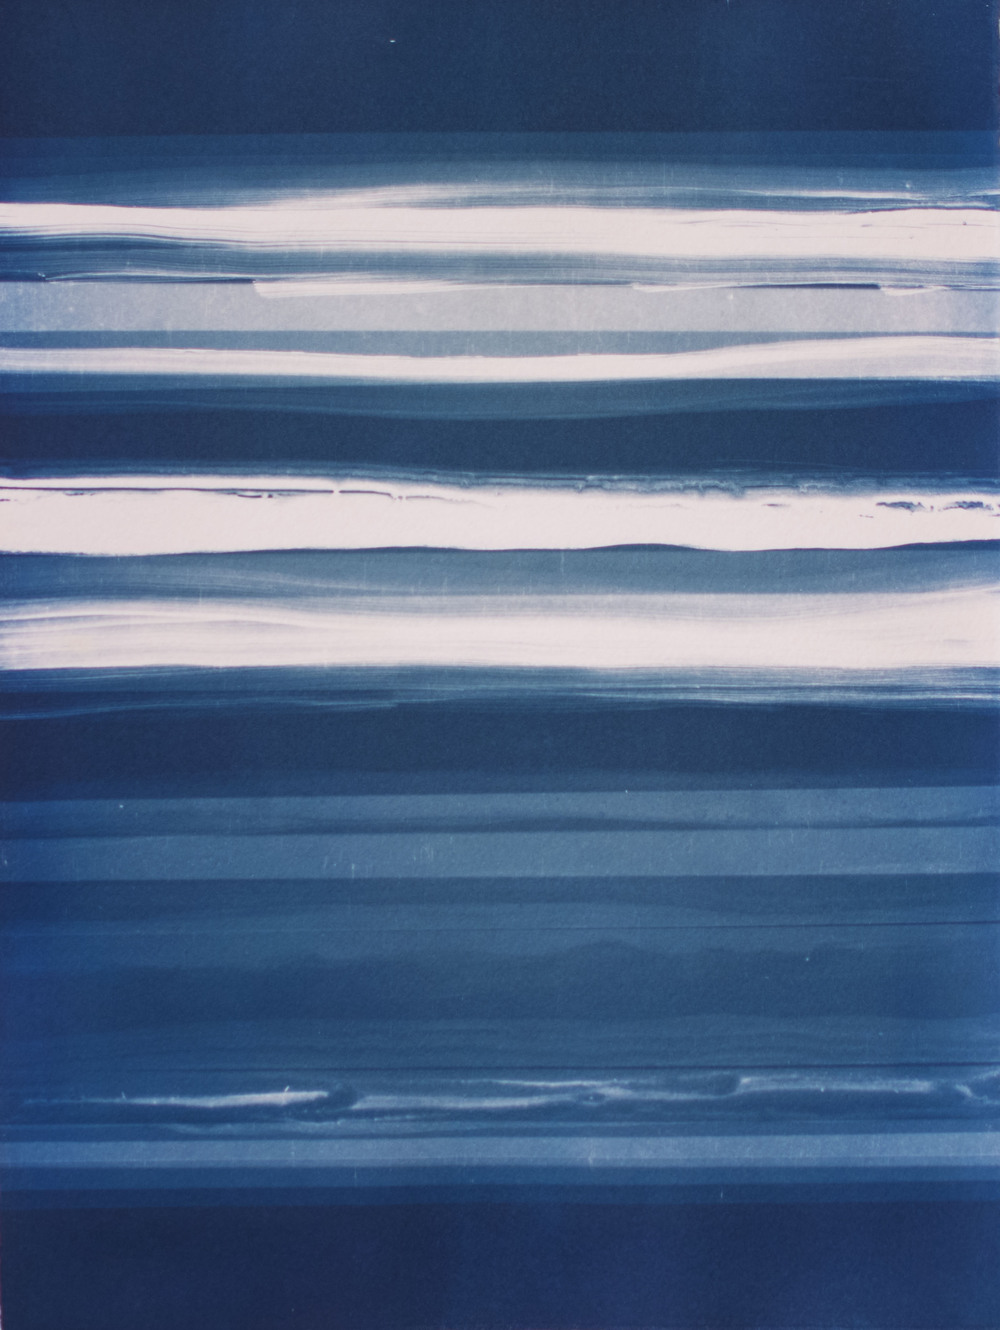 Horizons [6.10.15]  Cyanotype on Arches paper 15 x 11 inches